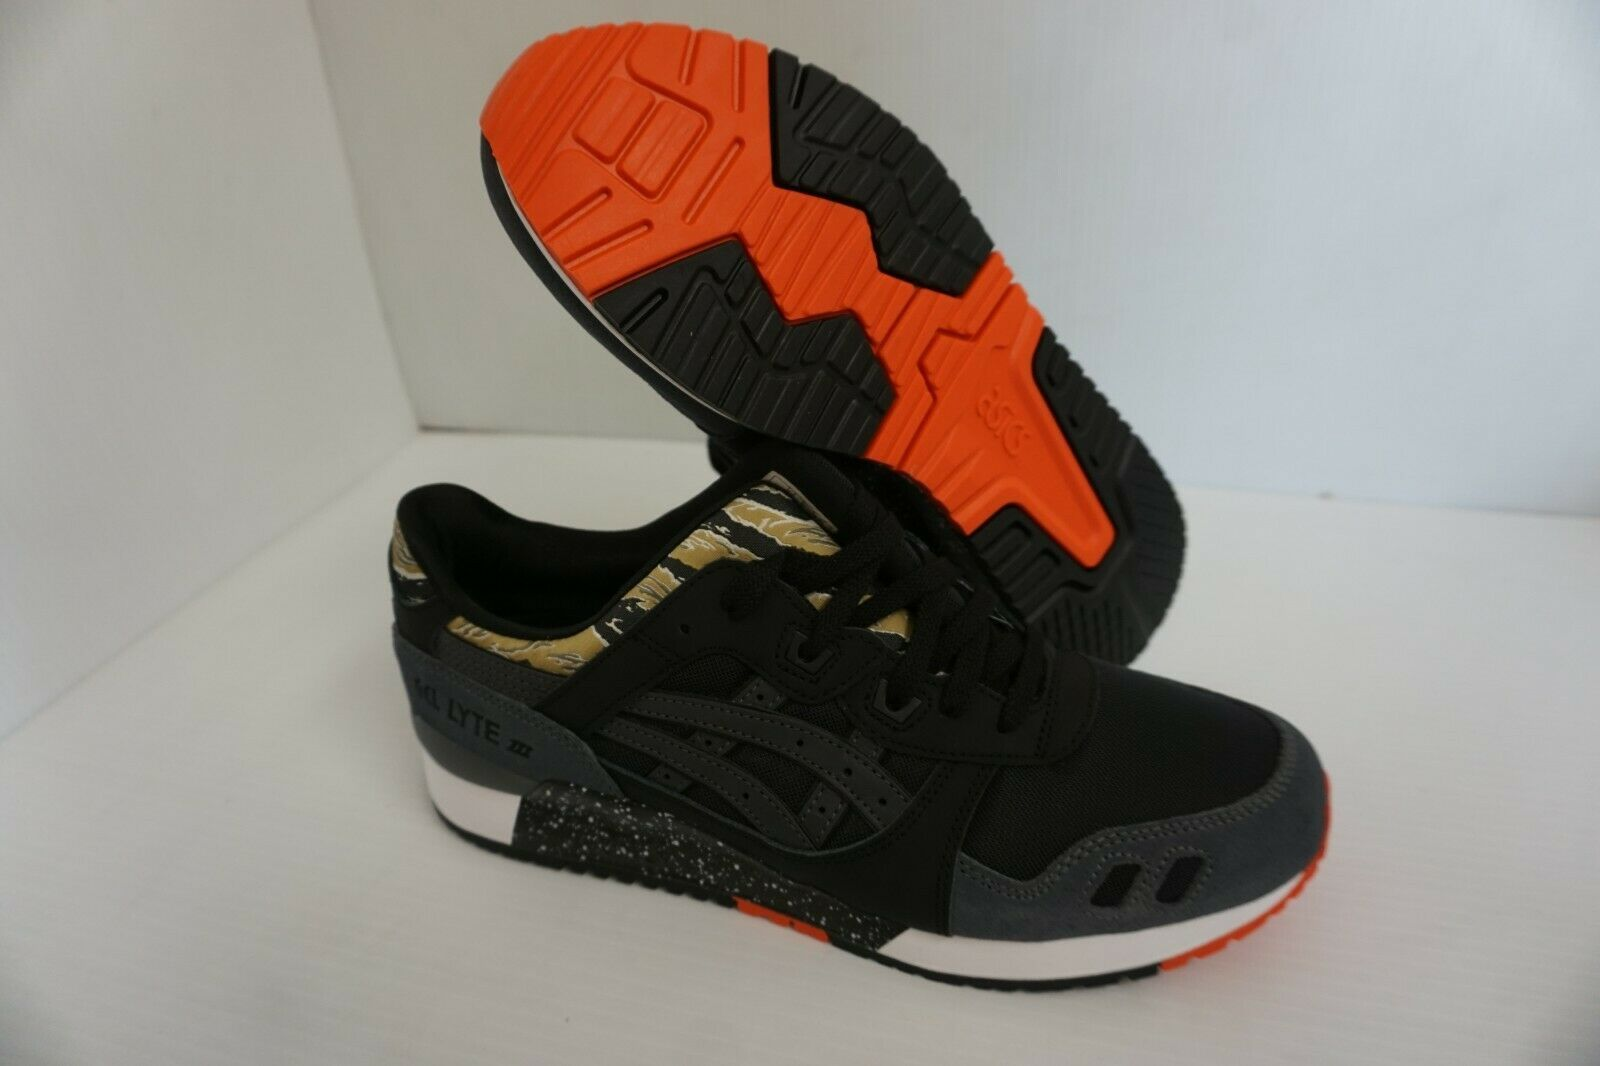 Primary image for Asics mens gel lyte iii running shoes tiger black orange size 9 us